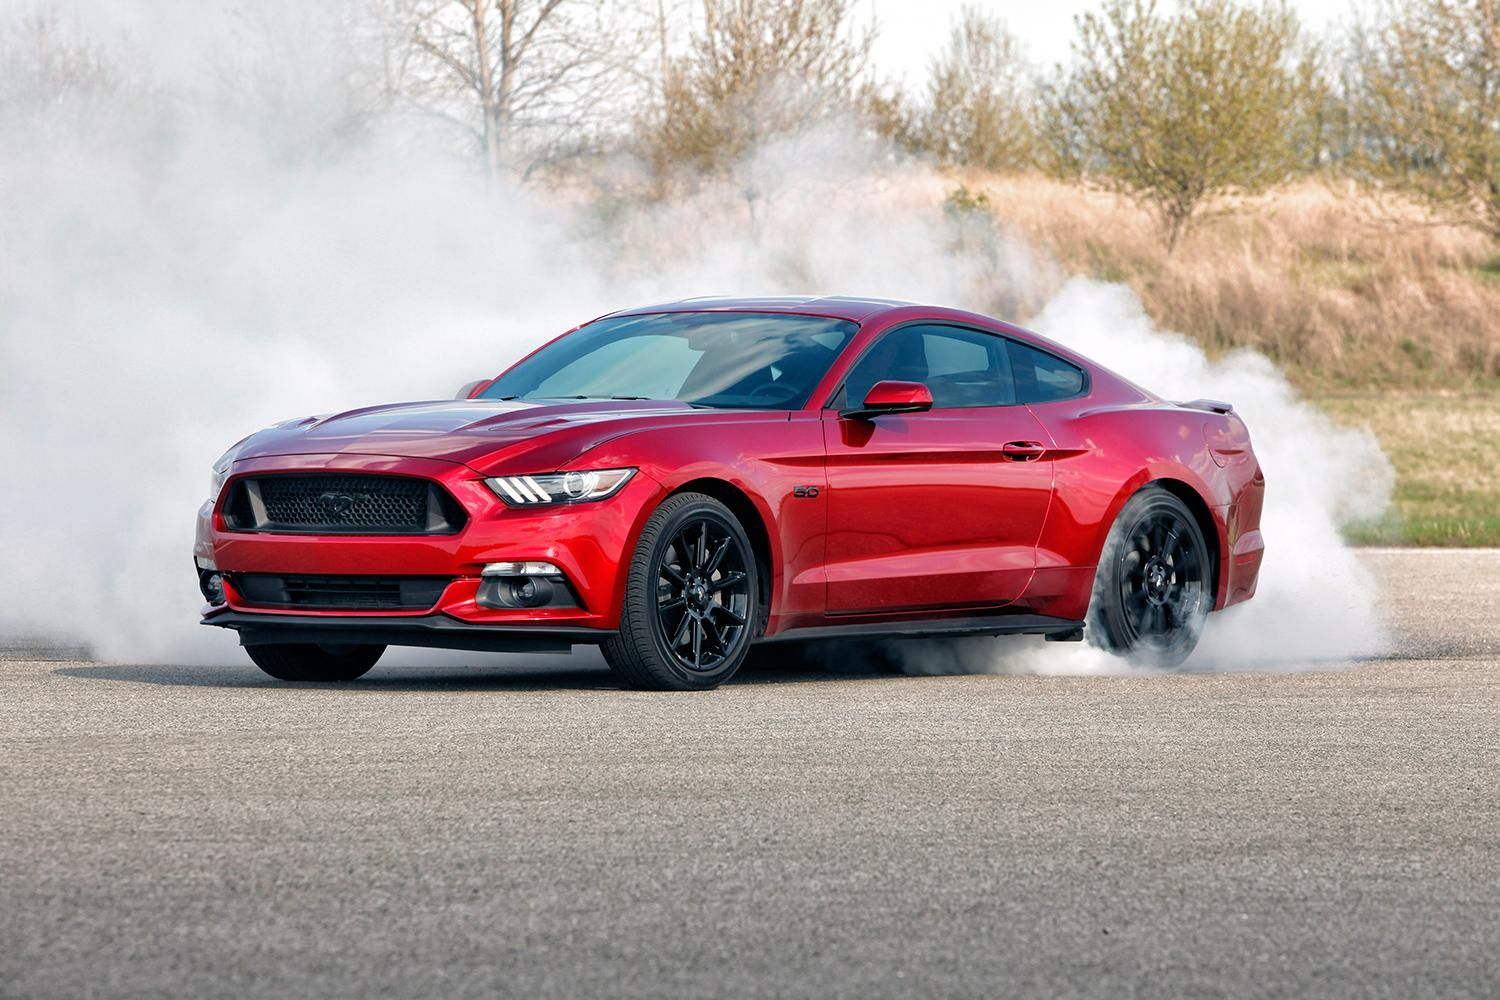 Ford Mustang Delivers Great Performance And Handling At A Bargain Price